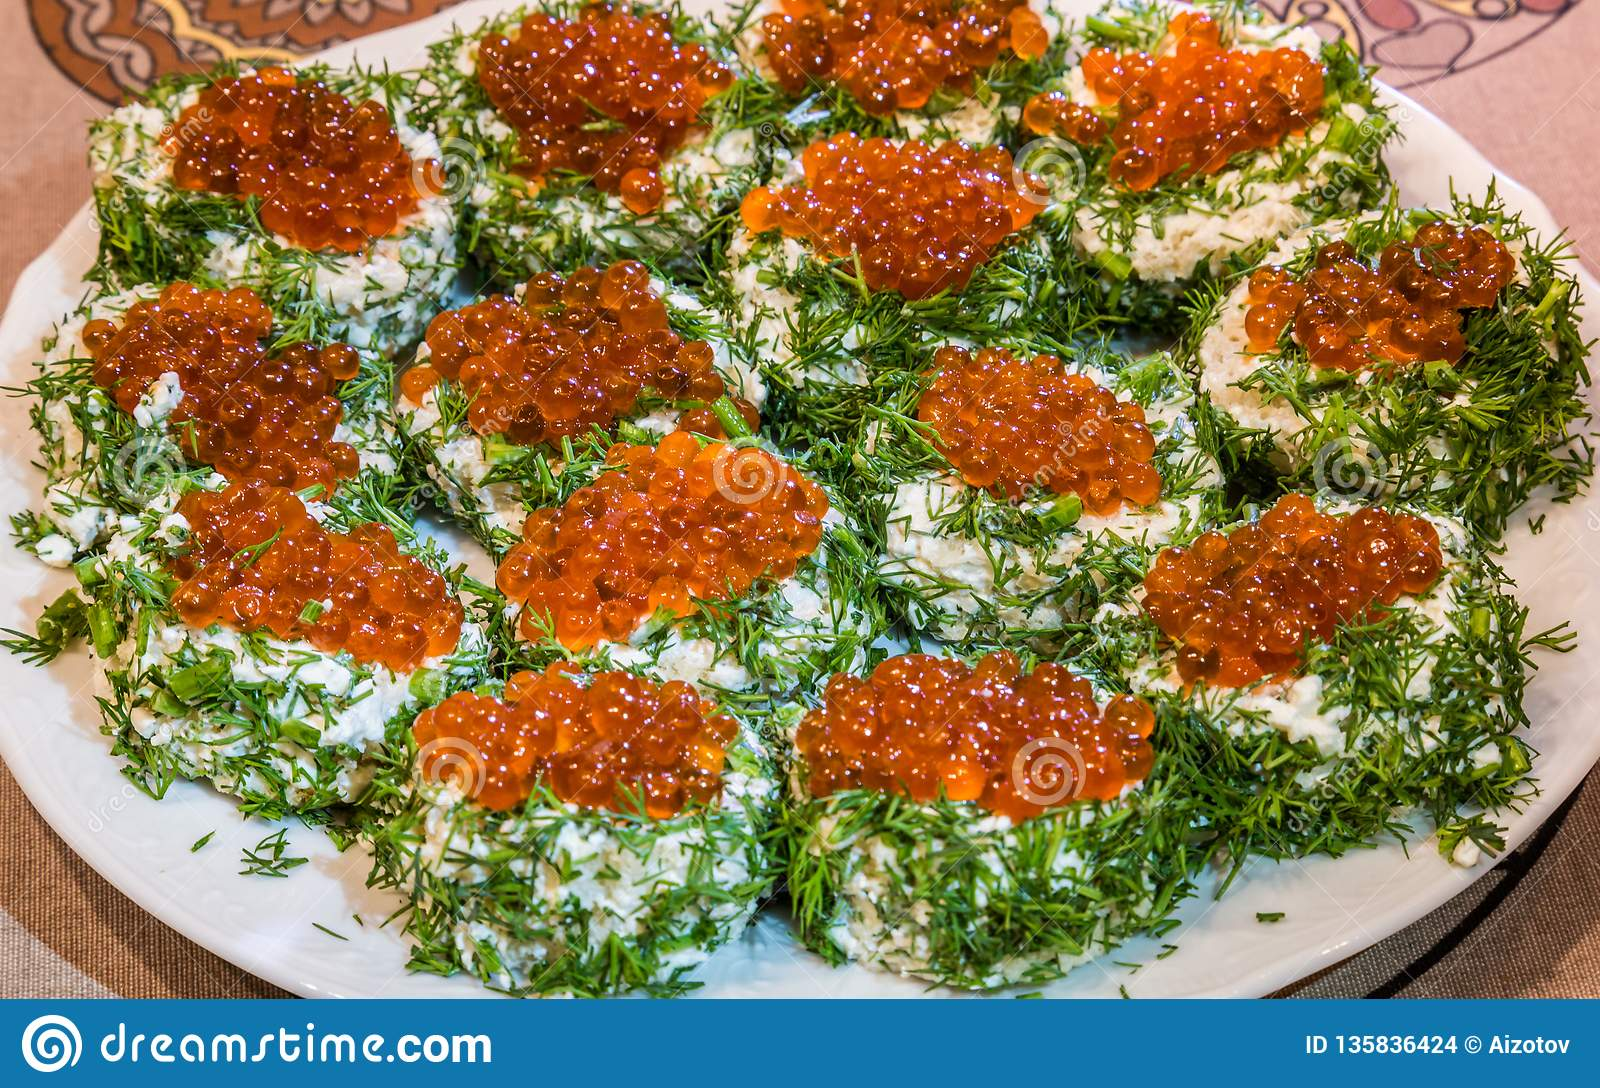 Sandwiches with red caviar and greens on a plate